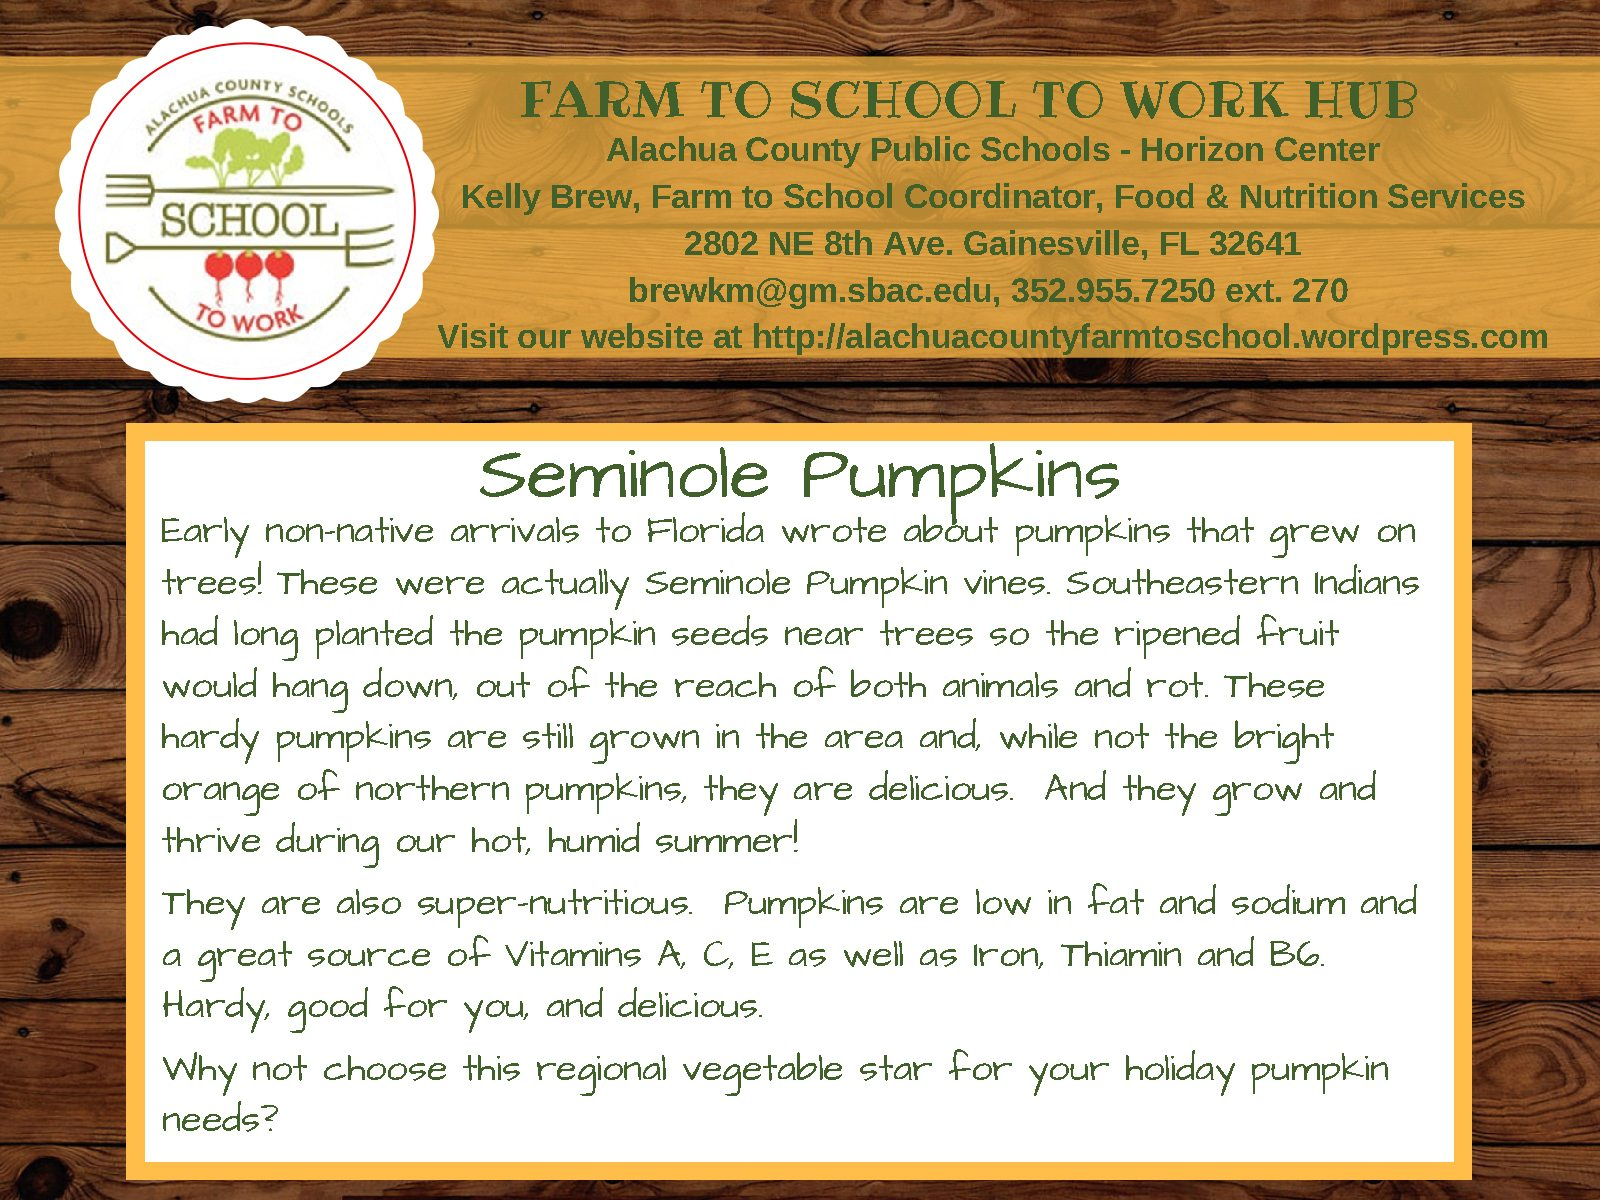 Seminole Pumpkins: Early non-native arrivals to Florida wrote about pumpkins. that grew on trees! These were actually Seminole Pumpkin vines. Southeastern Indians had long planted the pumpkin seeds near trees so the ripened fruit would hang down, out of reach of both animals and rot. These hardy pumpkins are still grown in the area and, while not the bright orange fo northern pumpkins, they are delicious. And they grow and thrive during our hot, humid summer! They are also super-nutritious. Pumpkins are low in fat and sodium and a great source of Vitamins A,C, E as well as iron, thiamin, and B6. Hardy, good for you, and delicious. Why not choose this regional vegetable star for your holiday pumpkin needs?